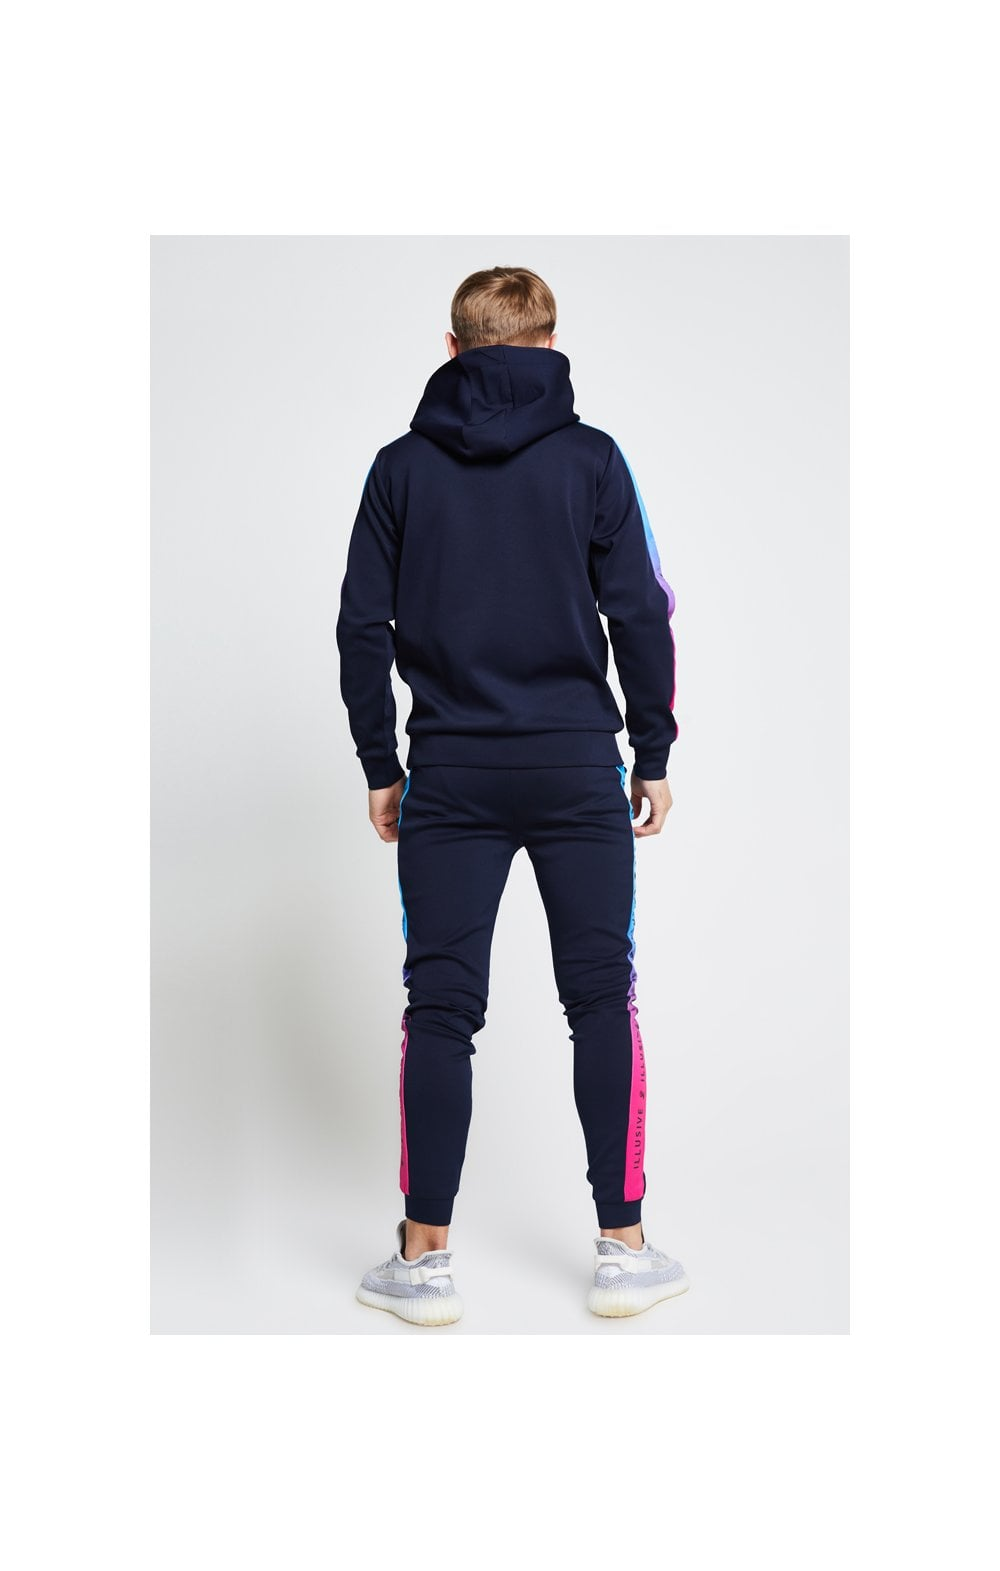 Illusive London Fade Panel Cuffed Joggers - Navy & Pink (4)